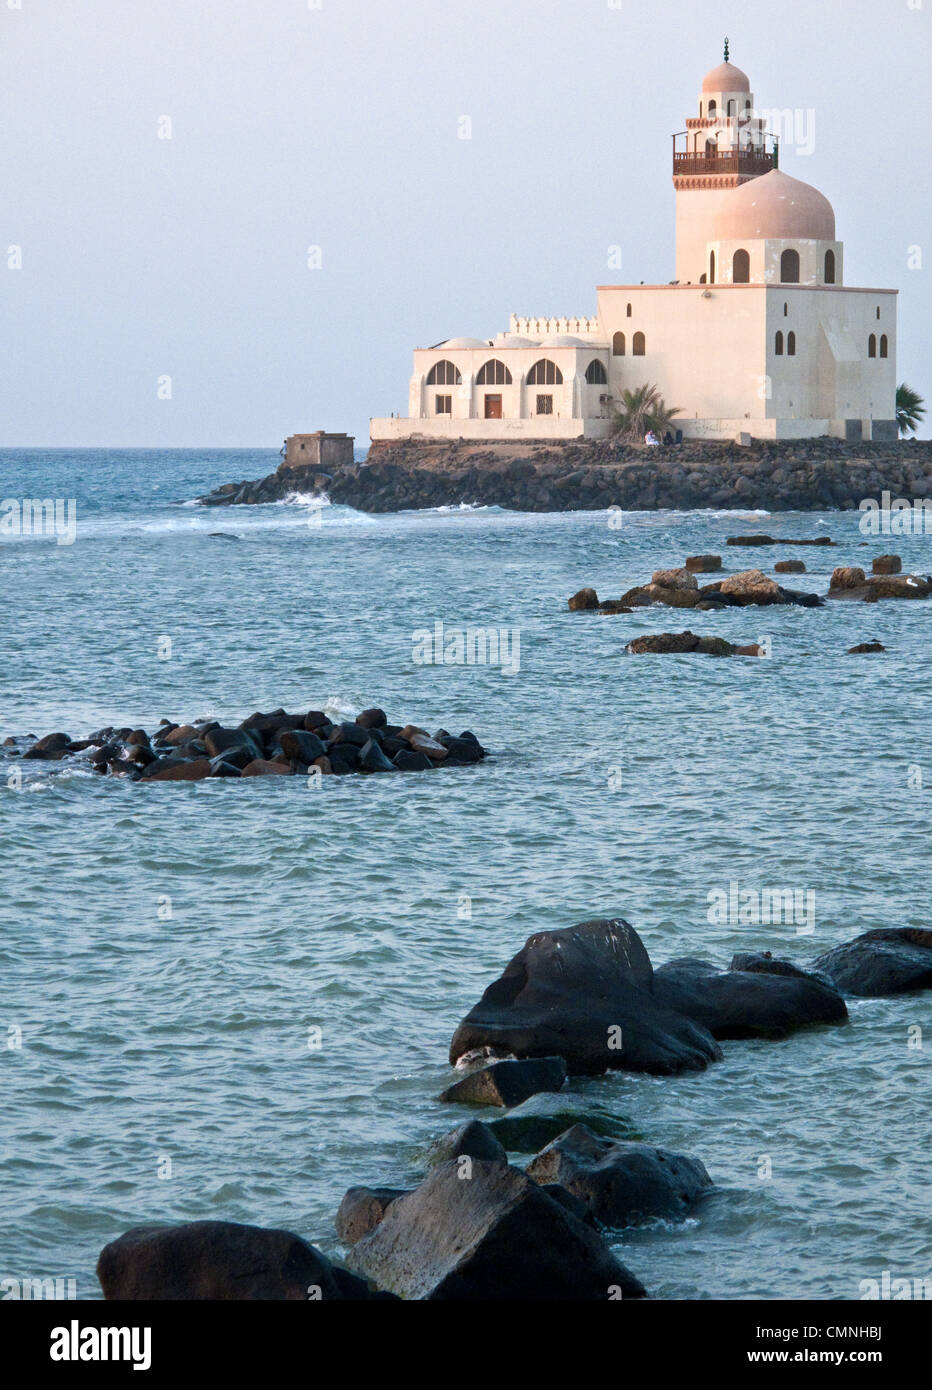 Asia Saudi Arabia The Sea Mosque on the waterfront in Jeddah - Stock Image